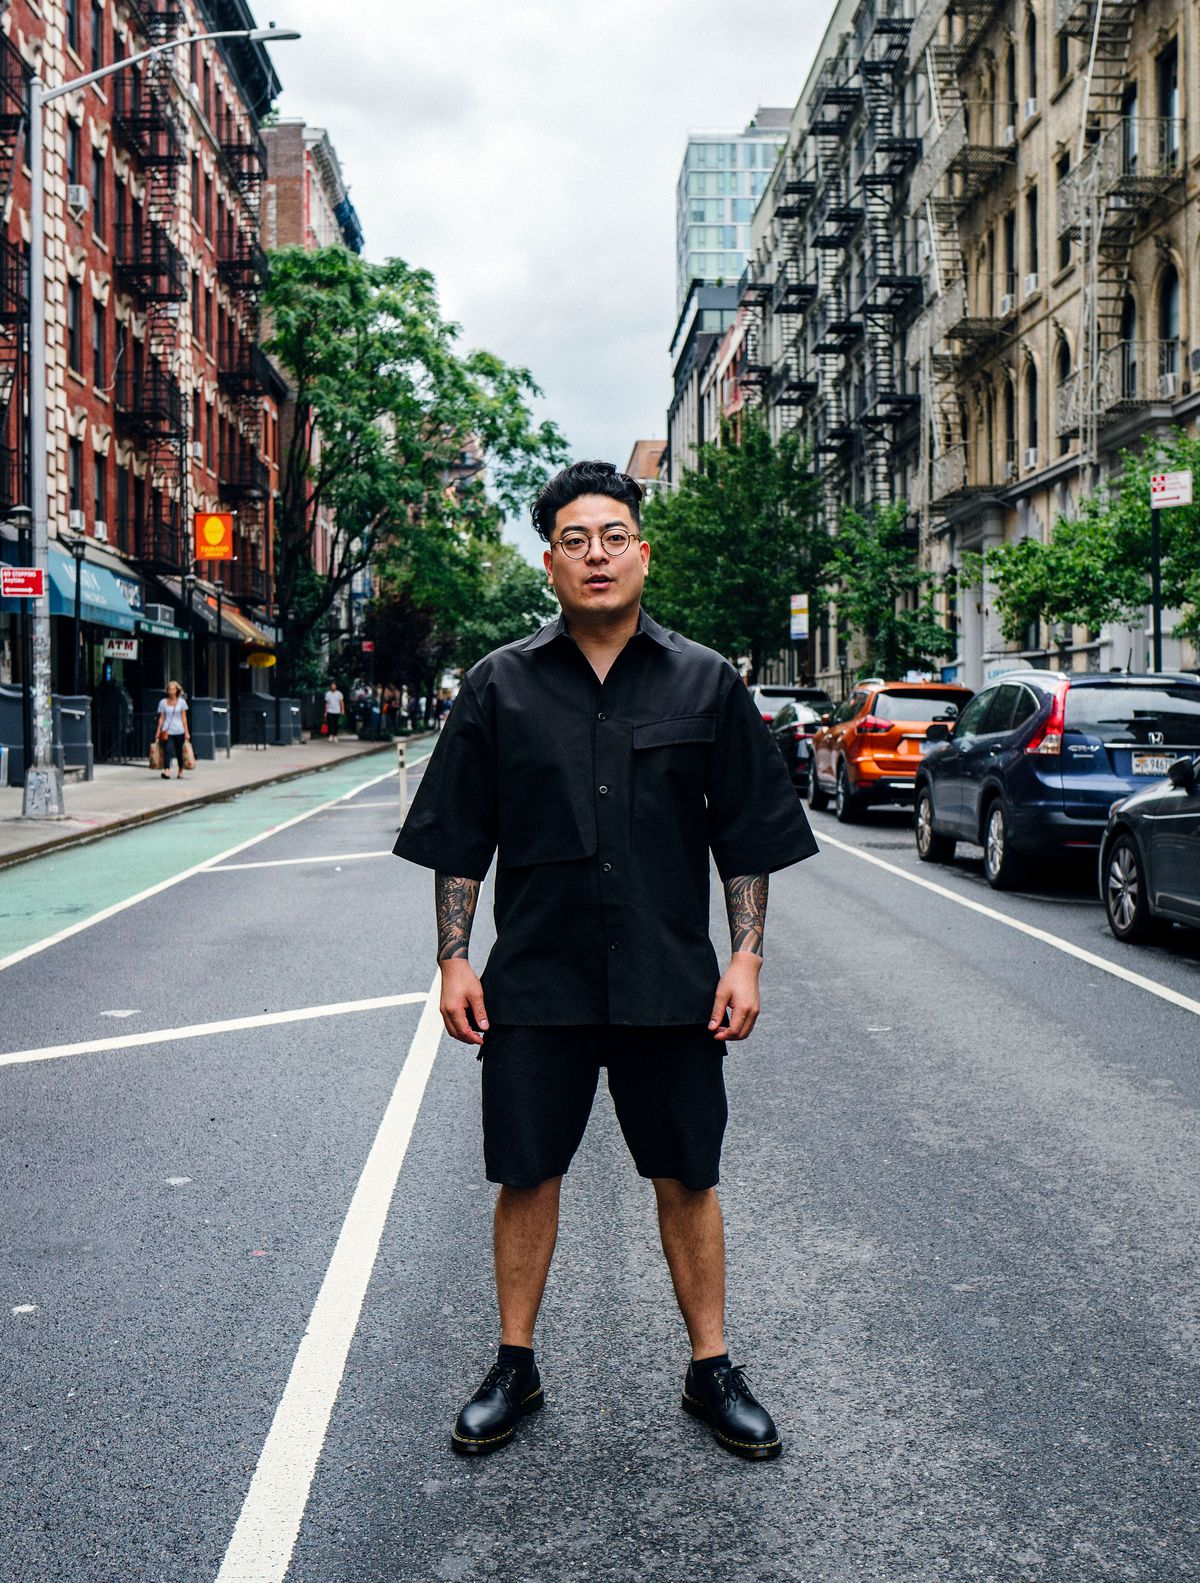 Jae Lee standing in black shorts in the middle of the street in the East Village